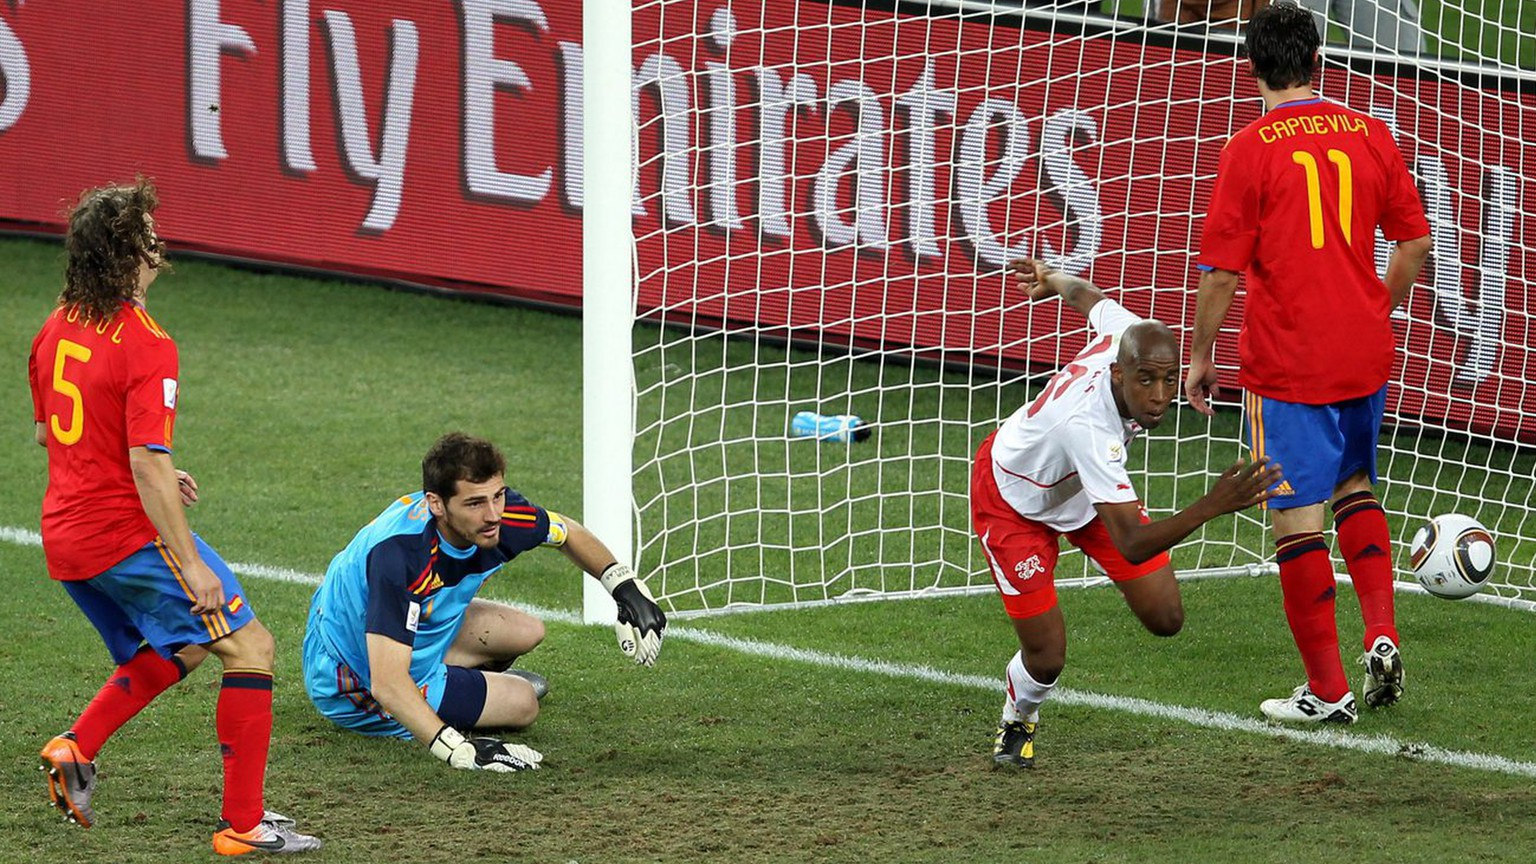 epa02205289 Swiss Gelson Fernandes (2nd R) celebates in front of Spain's goalkeeper Iker Casillas and defenders Gerard Pique (L), Carles Puyol (2nd L) and Joan Capdevila (R) after scoring the 1-0 lead uring the FIFA World Cup 2010 group H preliminary round match between Spain and Switzerland at the Durban stadium in Durban, South Africa, 16 June 2010.  EPA/ALI HAIDER Please refer to www.epa.eu/downloads/FIFA-WorldCup2010-Terms-and-Conditions.pdf